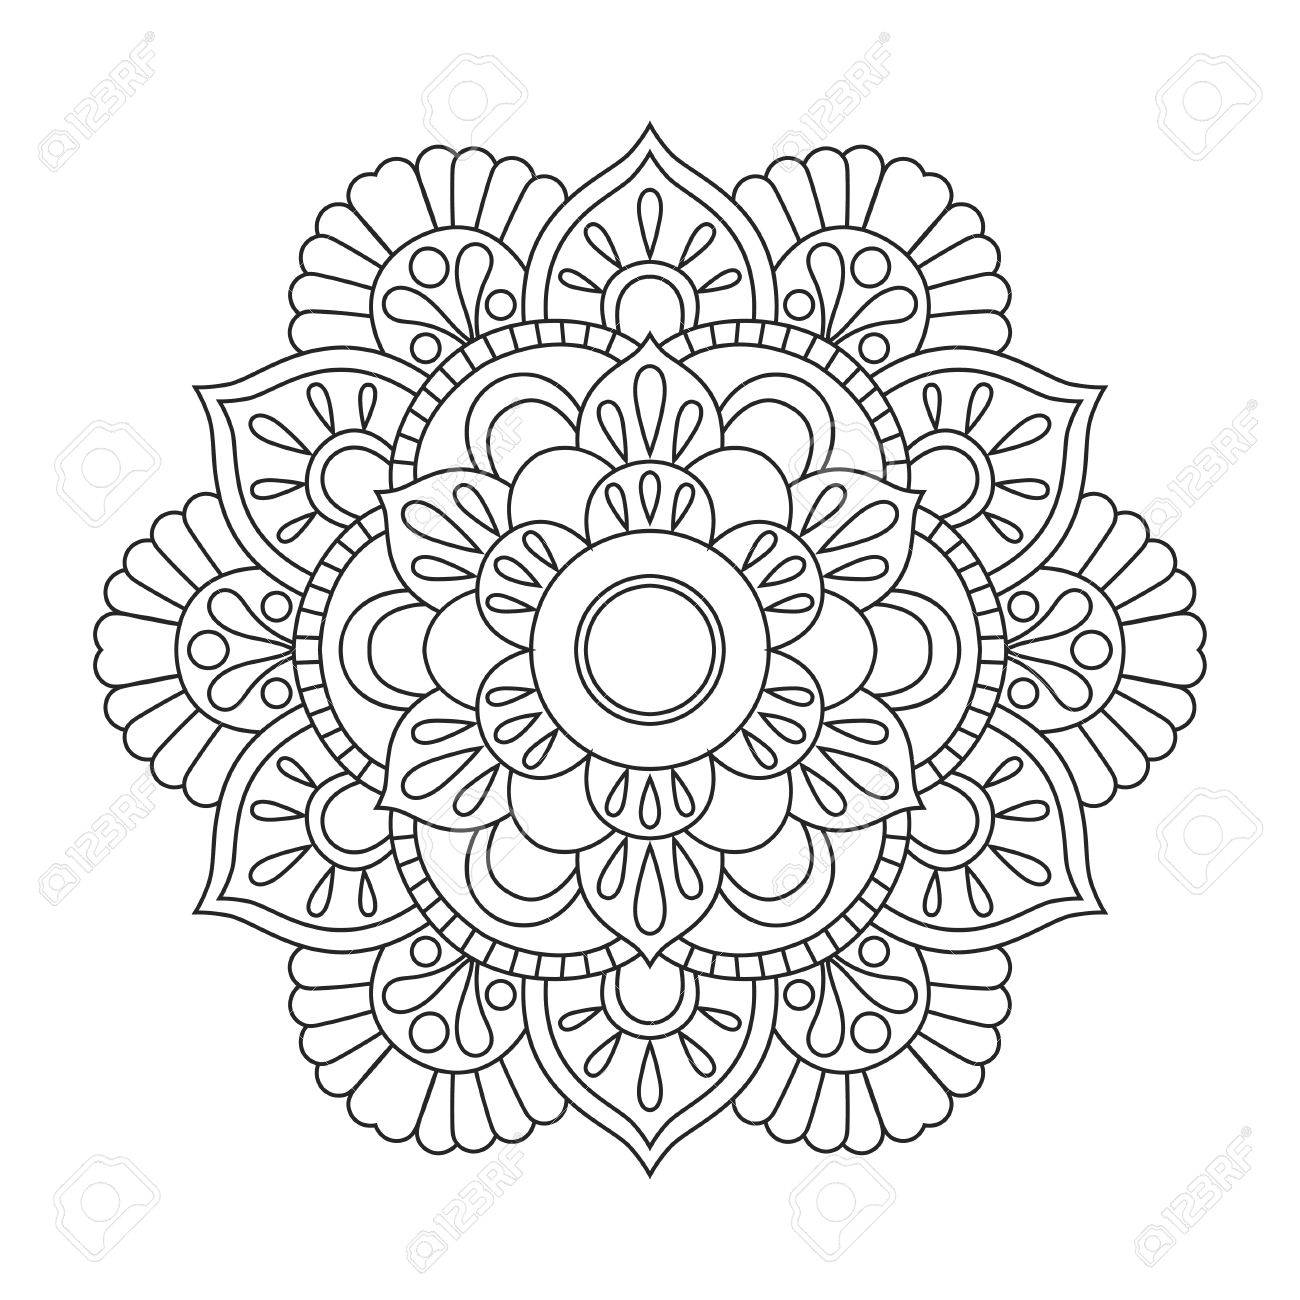 Outline Mandala For Coloring Book Anti Stress Therapy Pattern Decorative Round Ornament